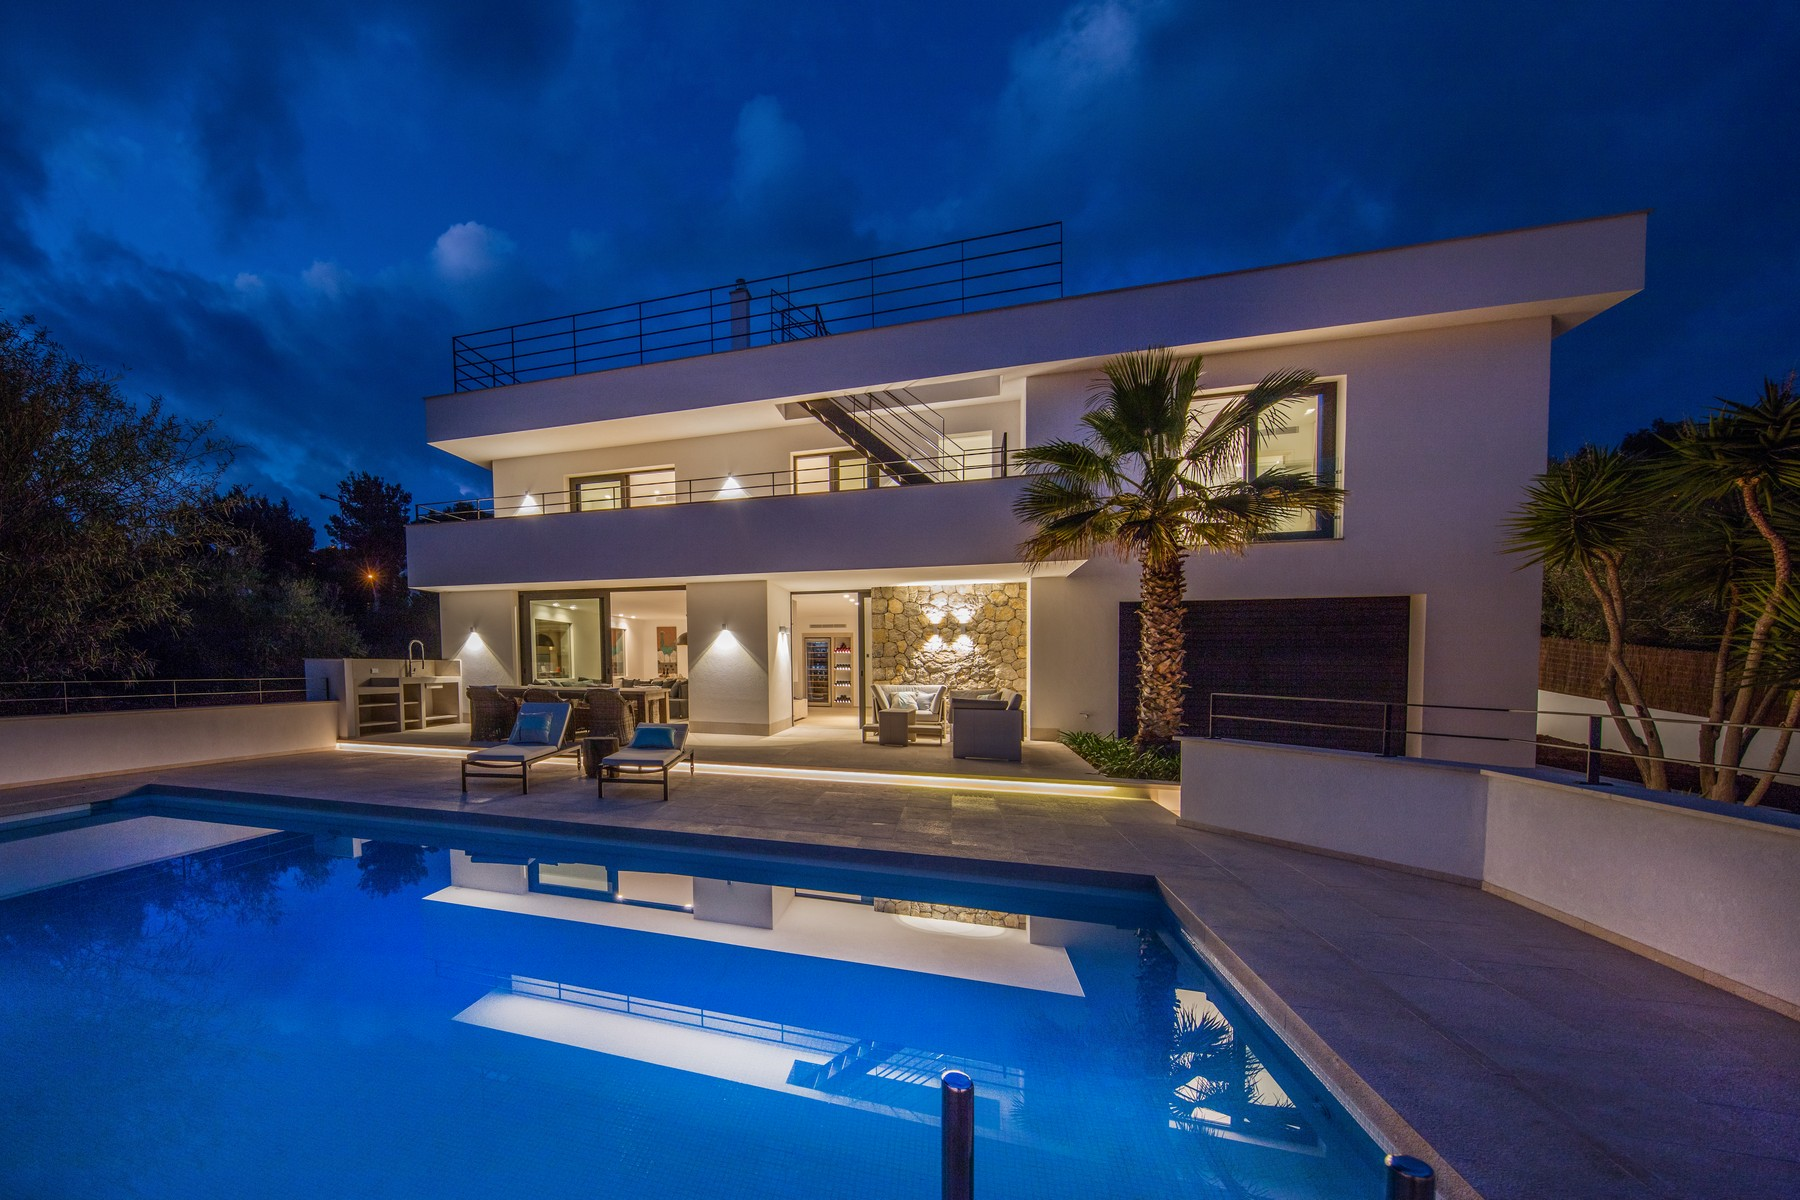 Single Family Home for Sale at Mediterranean Villa in Santa Ponsa Santa Ponsa, Mallorca, Spain